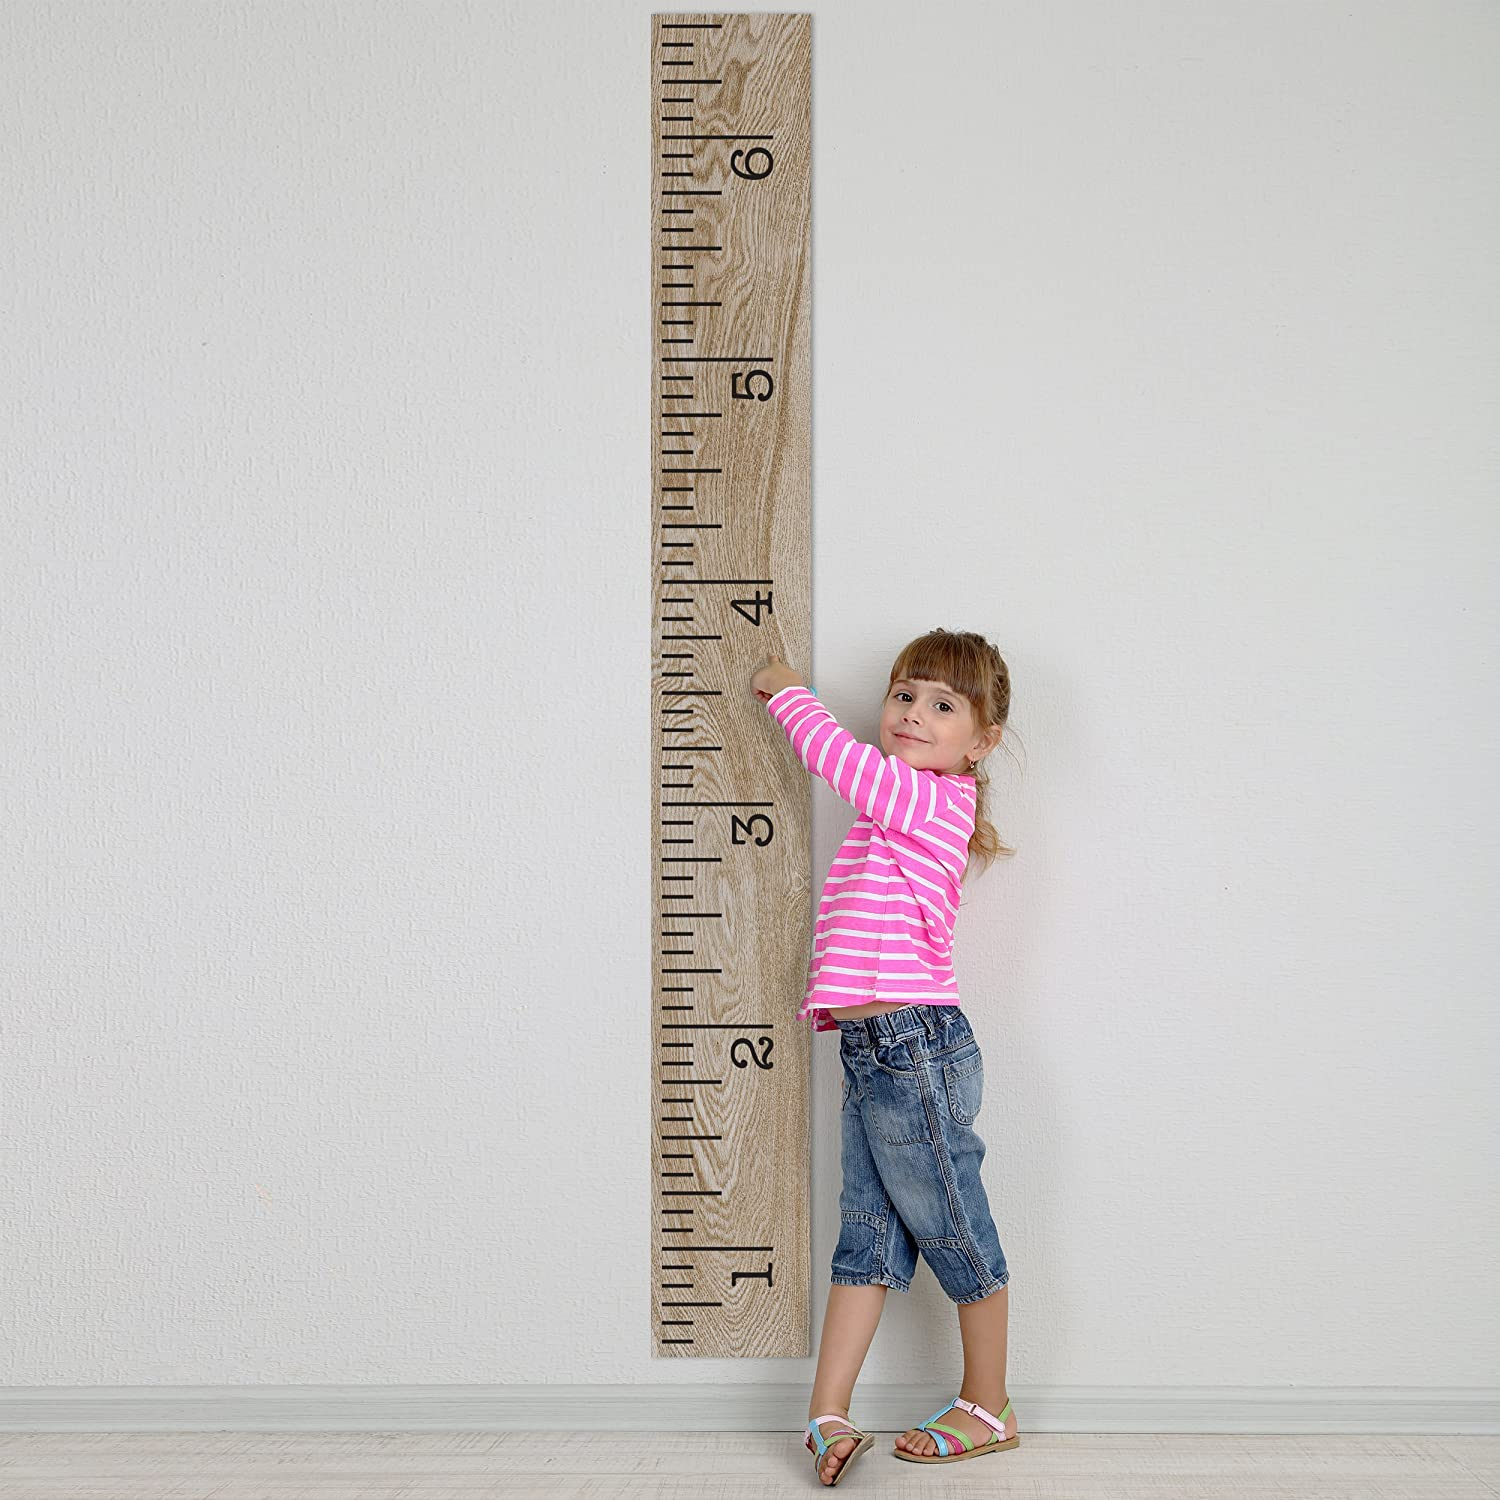 Kids Growth Chart Decal Stickers Wall Diy Applications Home Decor